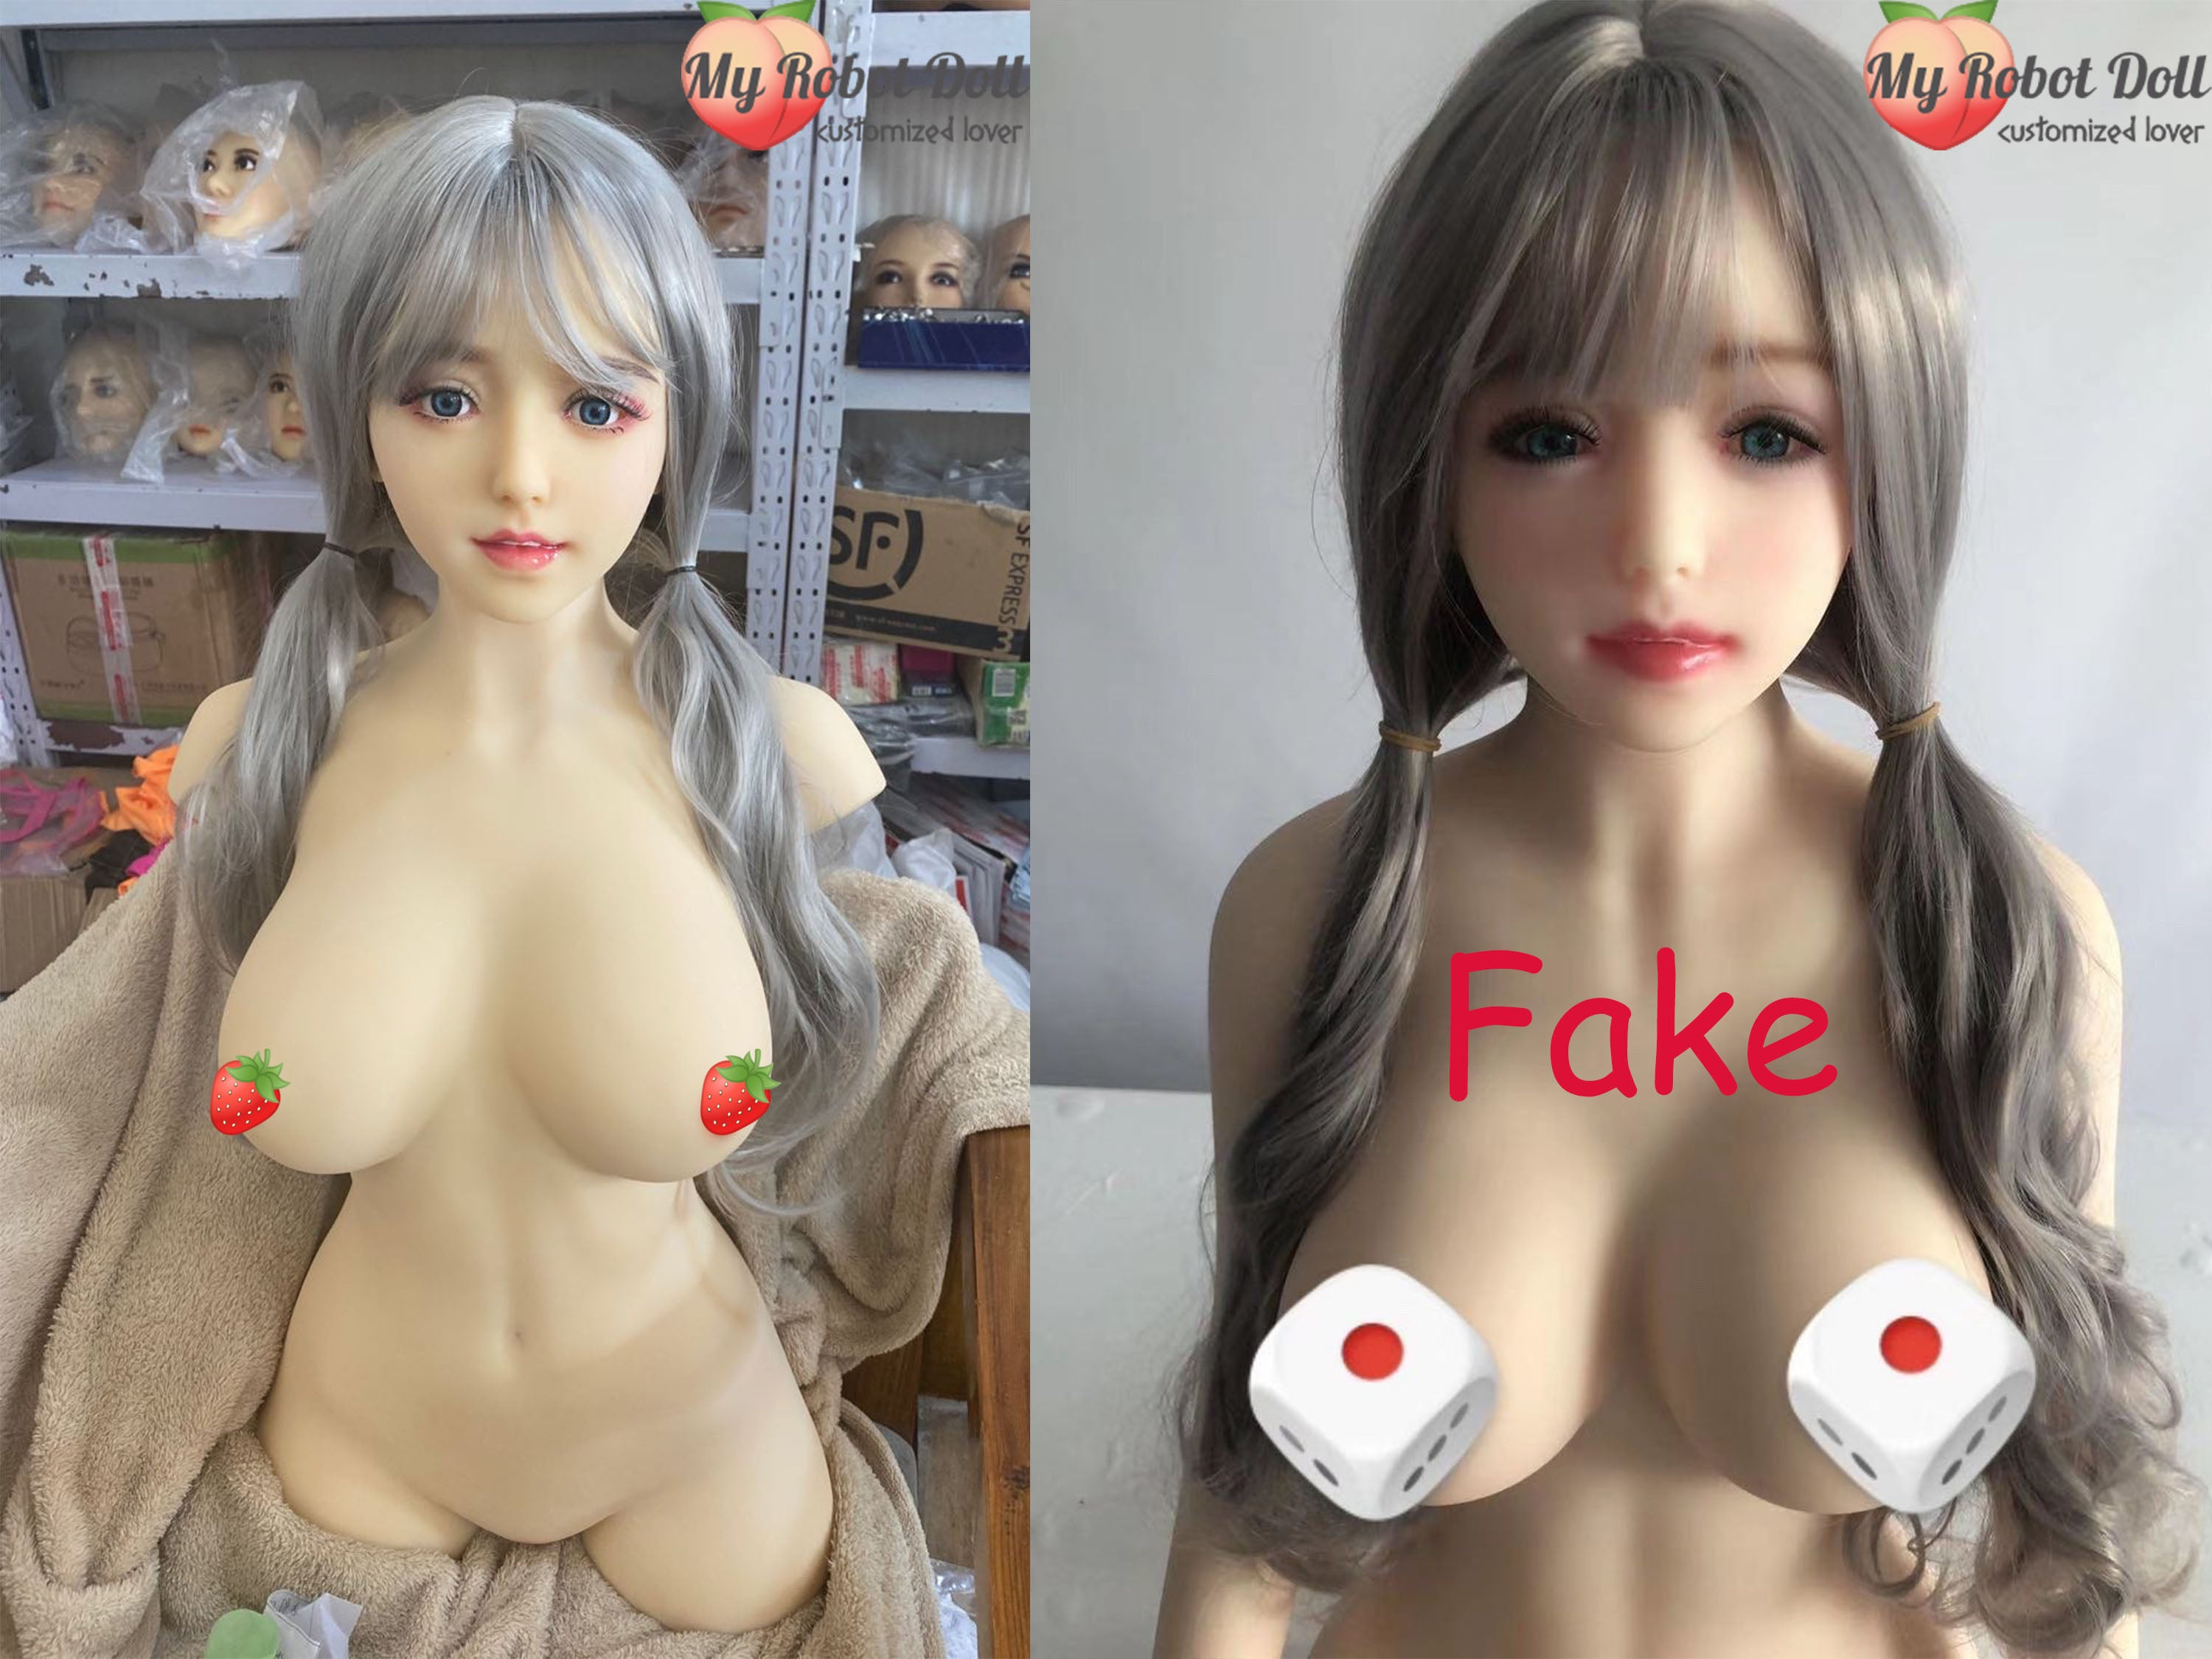 myrobotdoll.com real sex doll VS fake sex doll